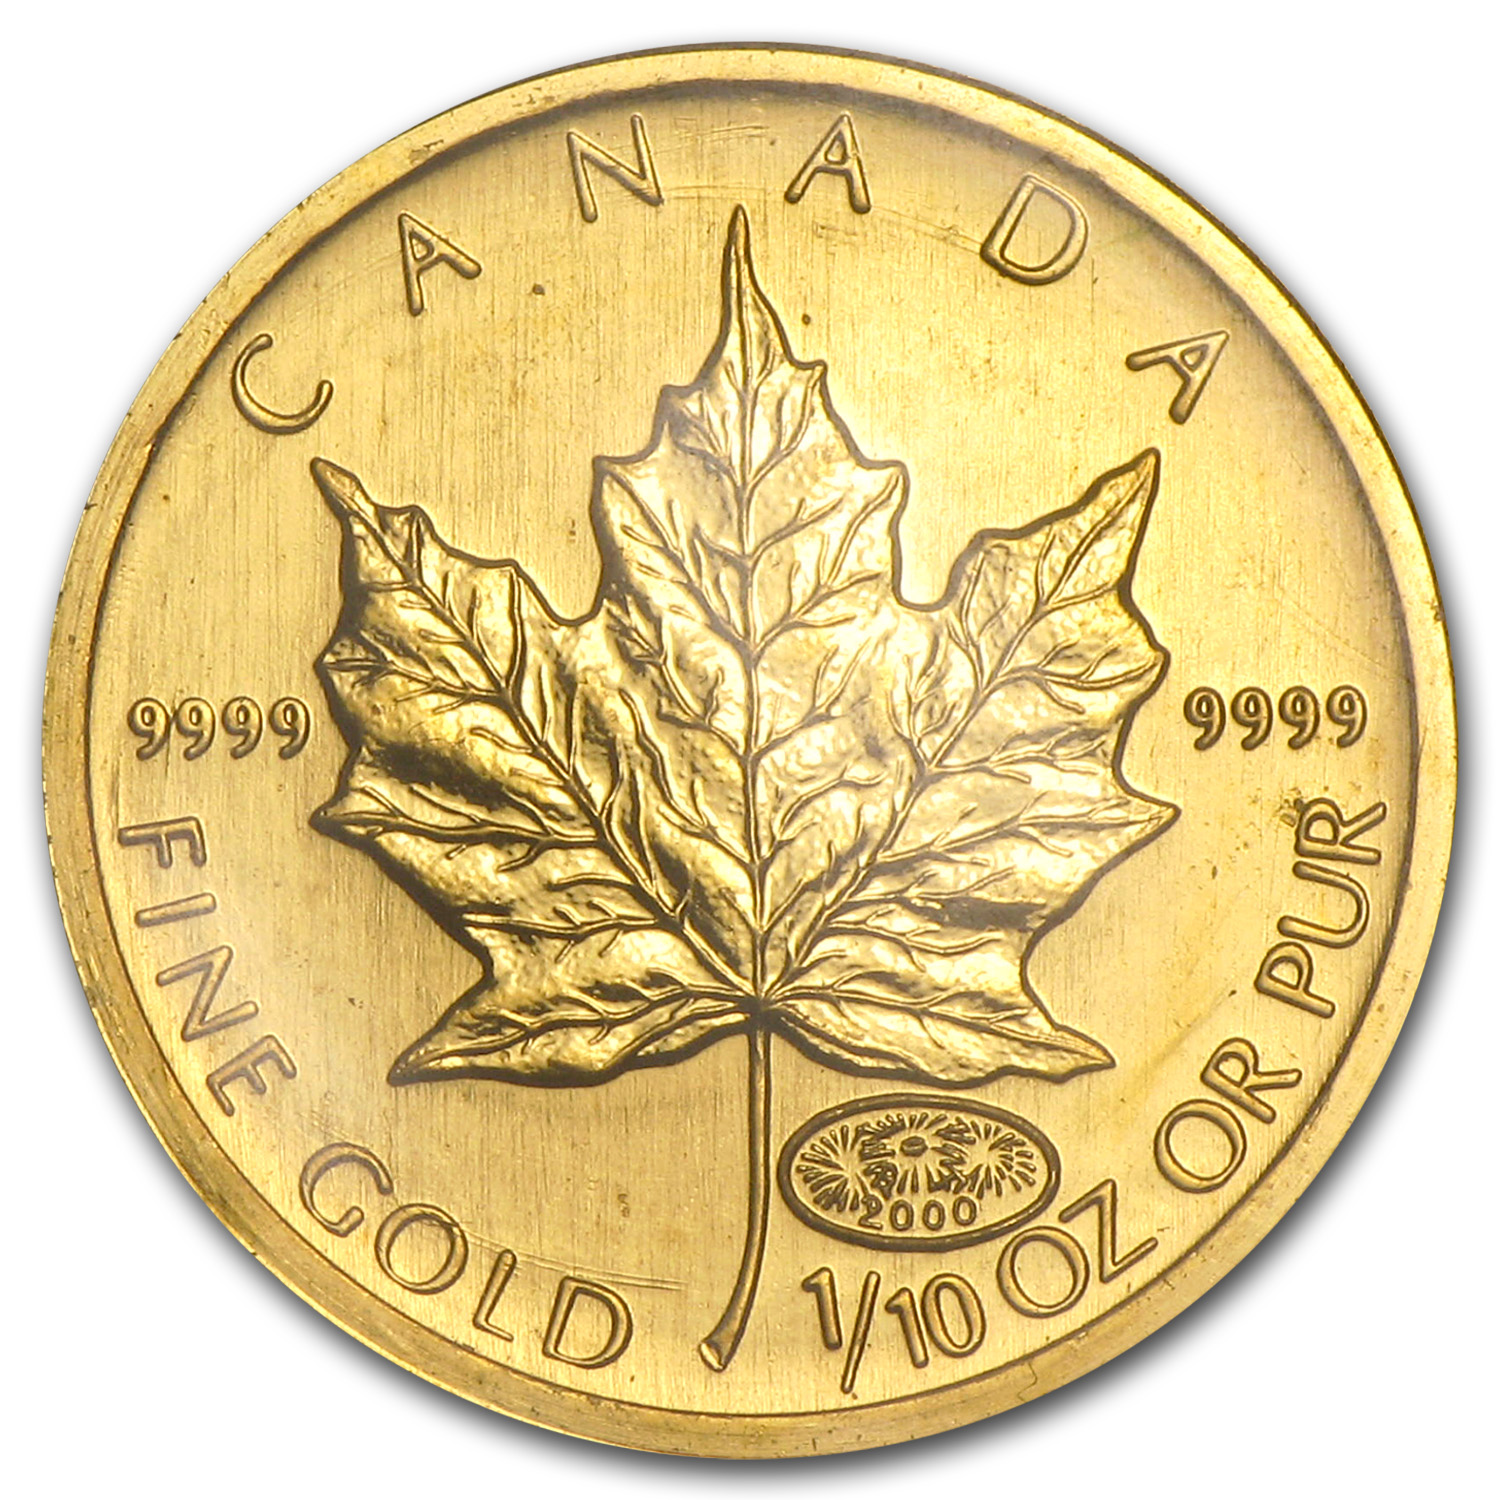 2000 Canada 1 10 Oz Gold Maple Leaf Bu Gold Value